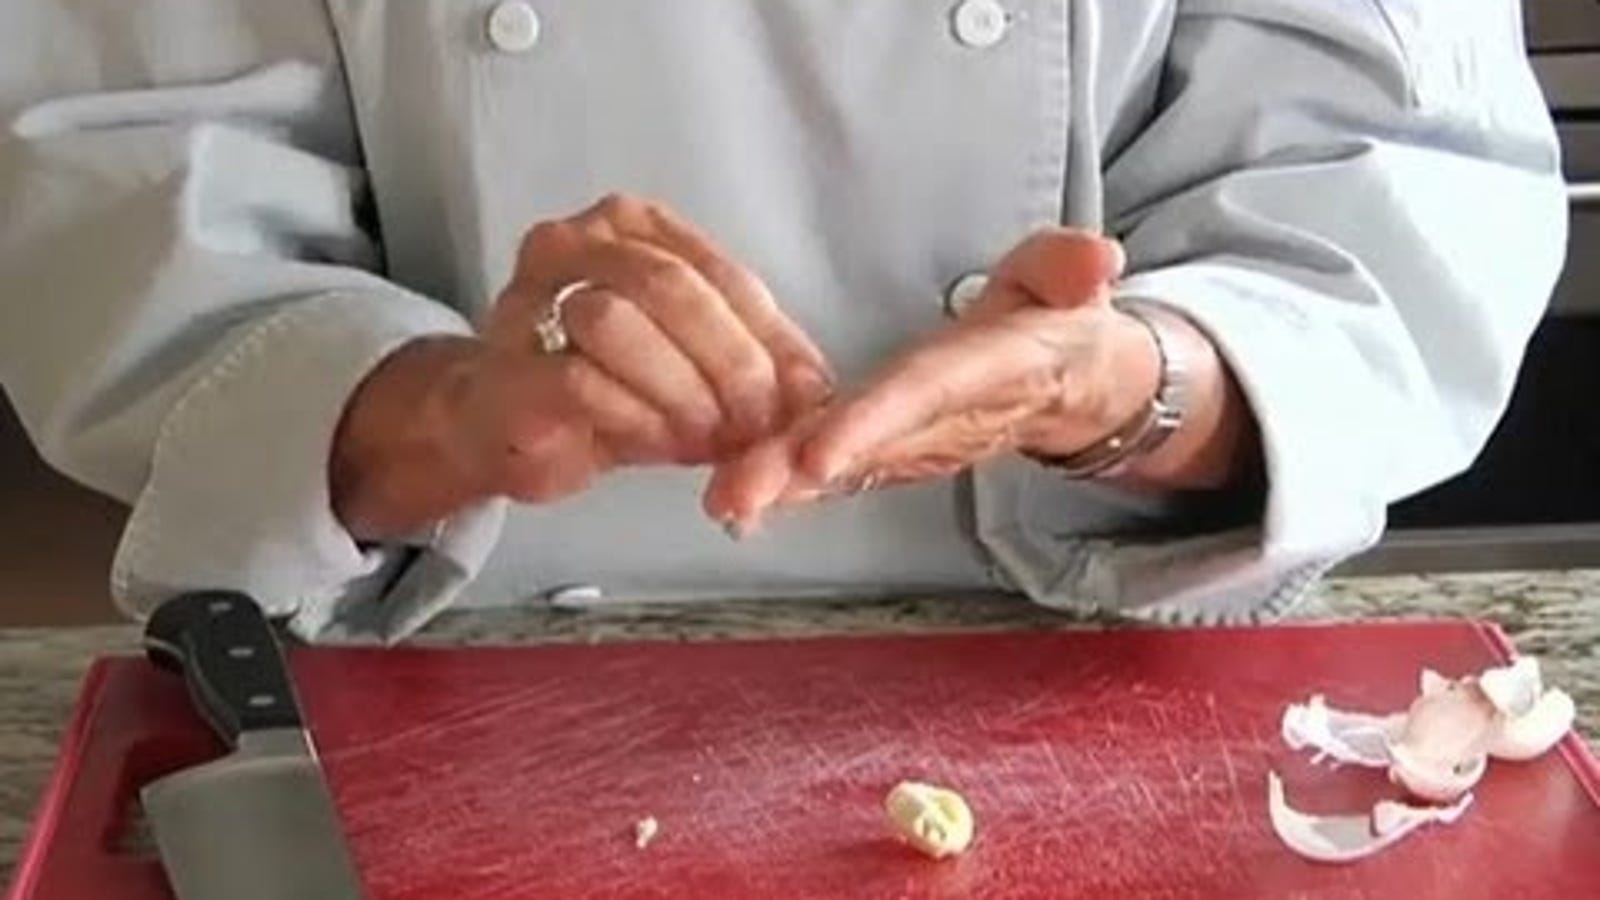 Get the Garlic or Onion Smell Off Your Hands by Rubbing Them